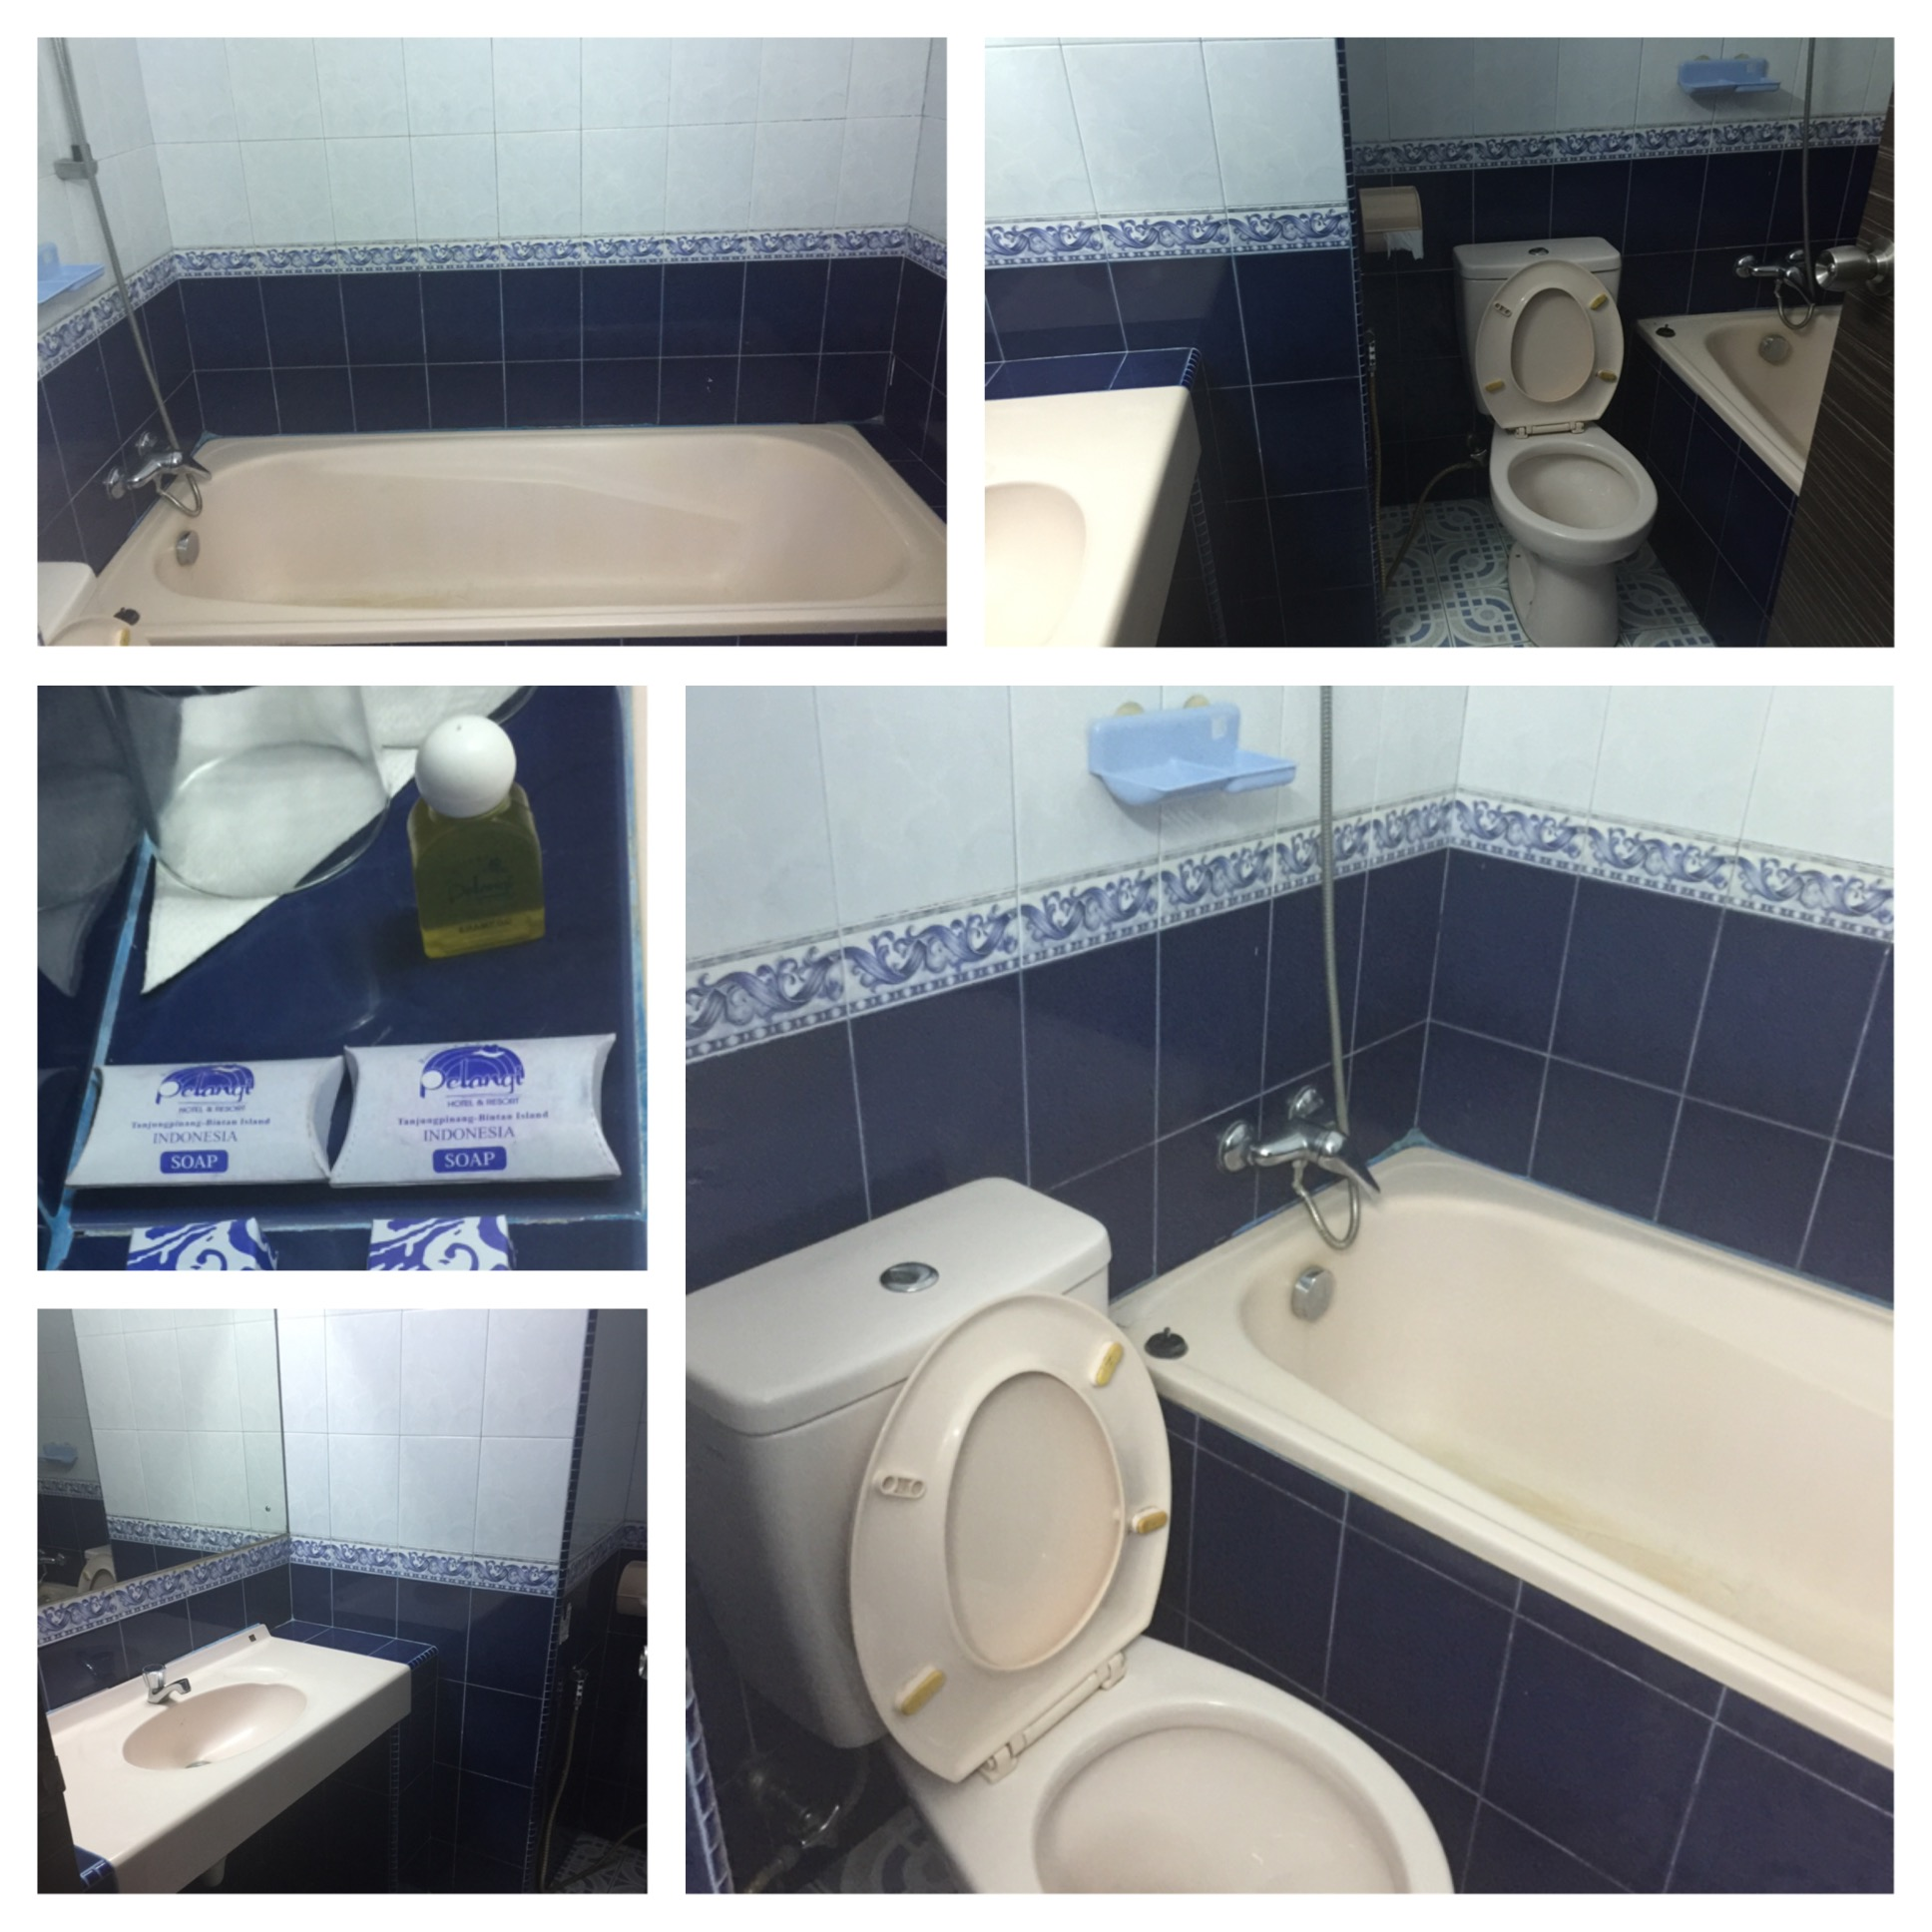 2d1n Bintan Tour Pelangi Hotel Pcys Life Paket Trip Pulau 2d 1n Non Dive We Stayed At And Our Room Is So Damn Spacious Can Its Also My Very First Time Having The Luxury Of To Soak Myself In Bathtub